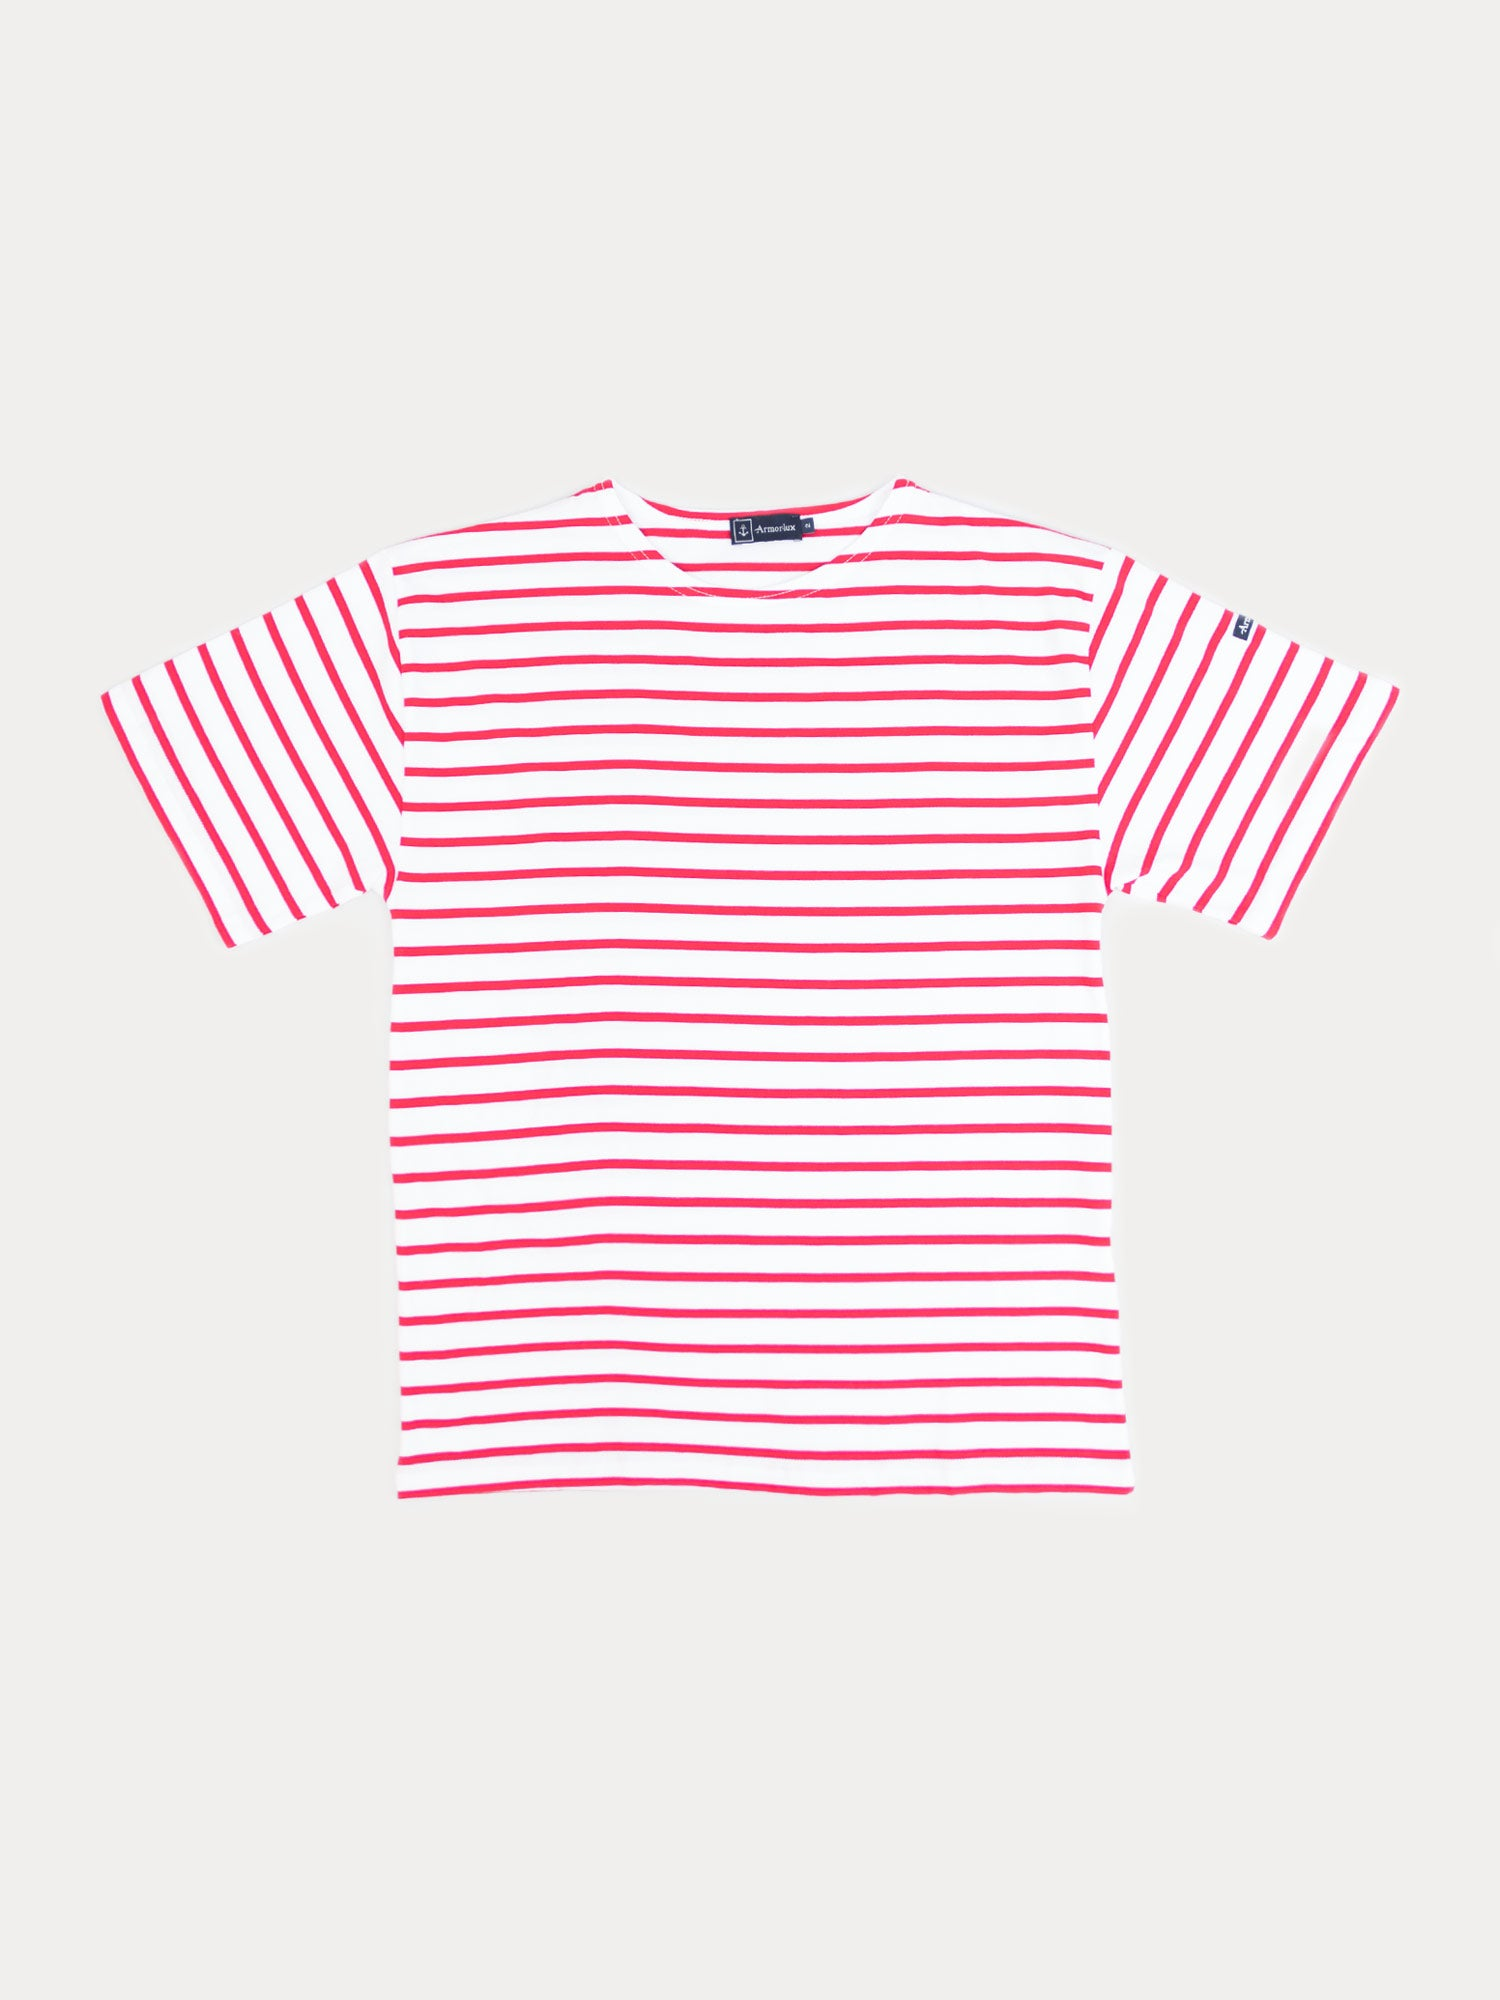 Armor Lux Theviec-Sailor T-Shirt (White & Dark Red)